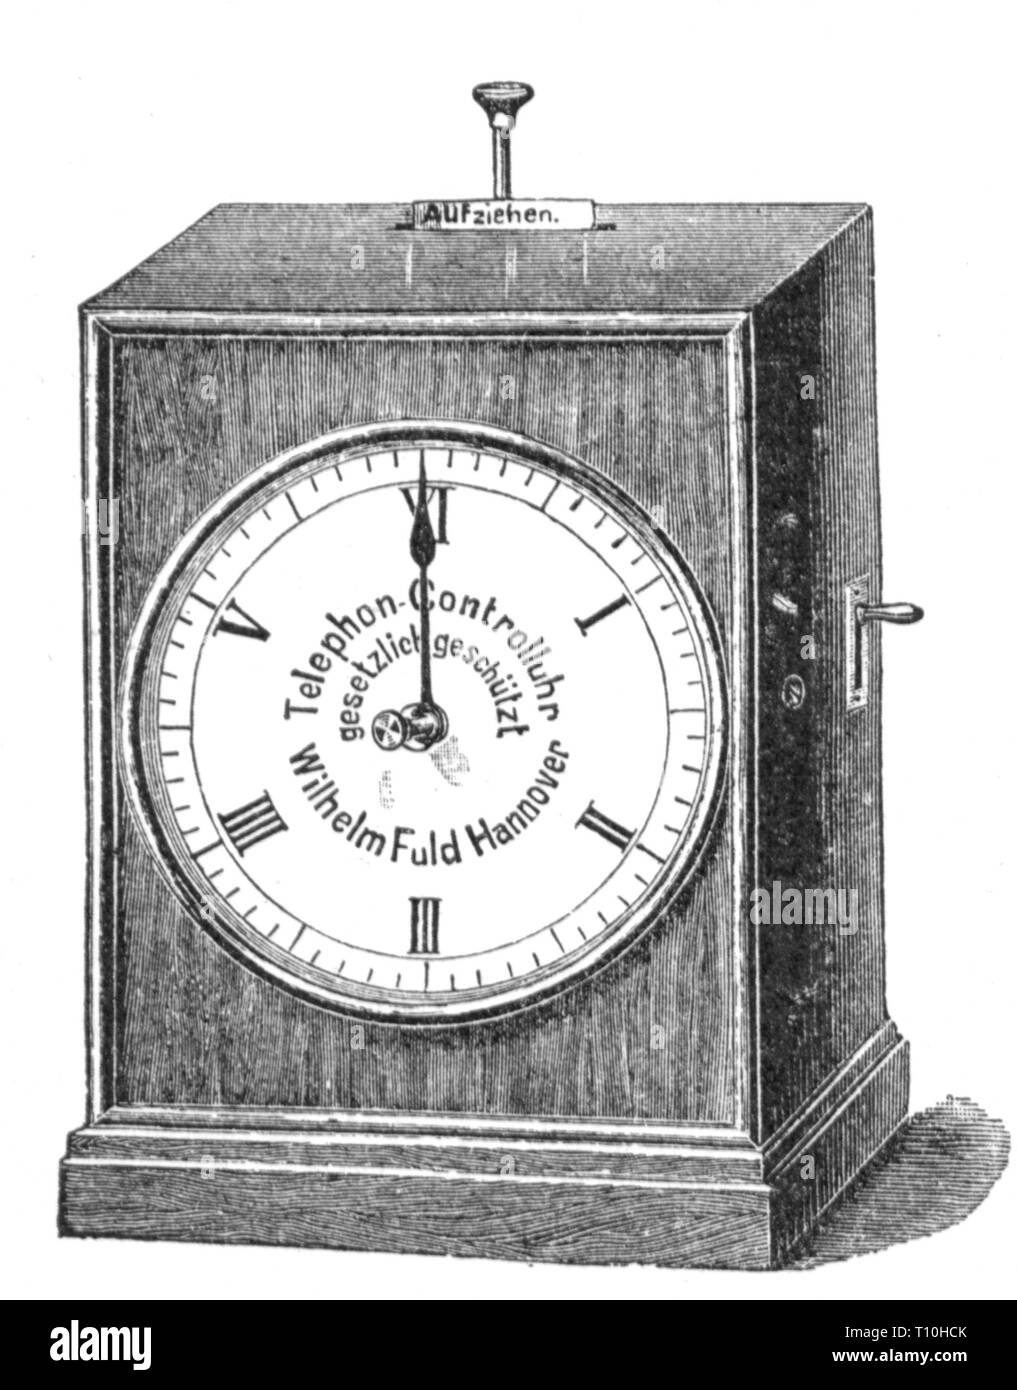 clock, telephone control clock for controling liable charges calls, made by: Wilhelm Fuld, Hanover, wood engraving, circa 1895, Artist's Copyright has not to be cleared - Stock Image